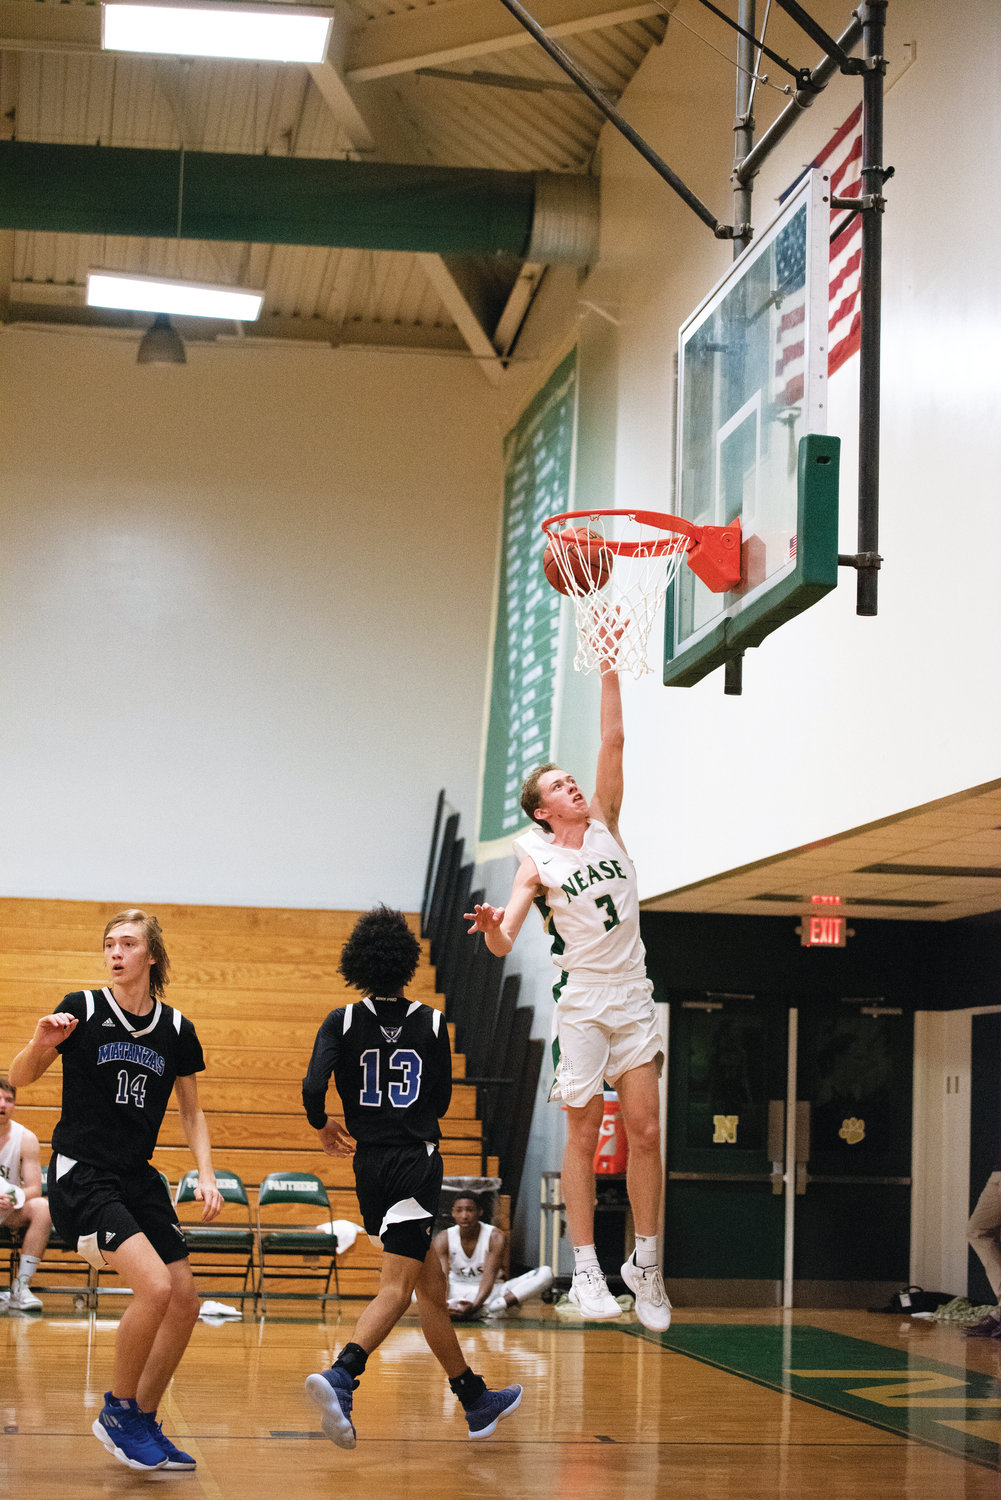 Nease senior Zachary Fifield makes a layup for the Panthers, who defeated Matanzas, 56-45, in the final game of the St. Johns River Athletic Conference (SJRAC) Tournament last Saturday, Feb. 2. Fifield finished with 11 points, six rebounds and four assists.